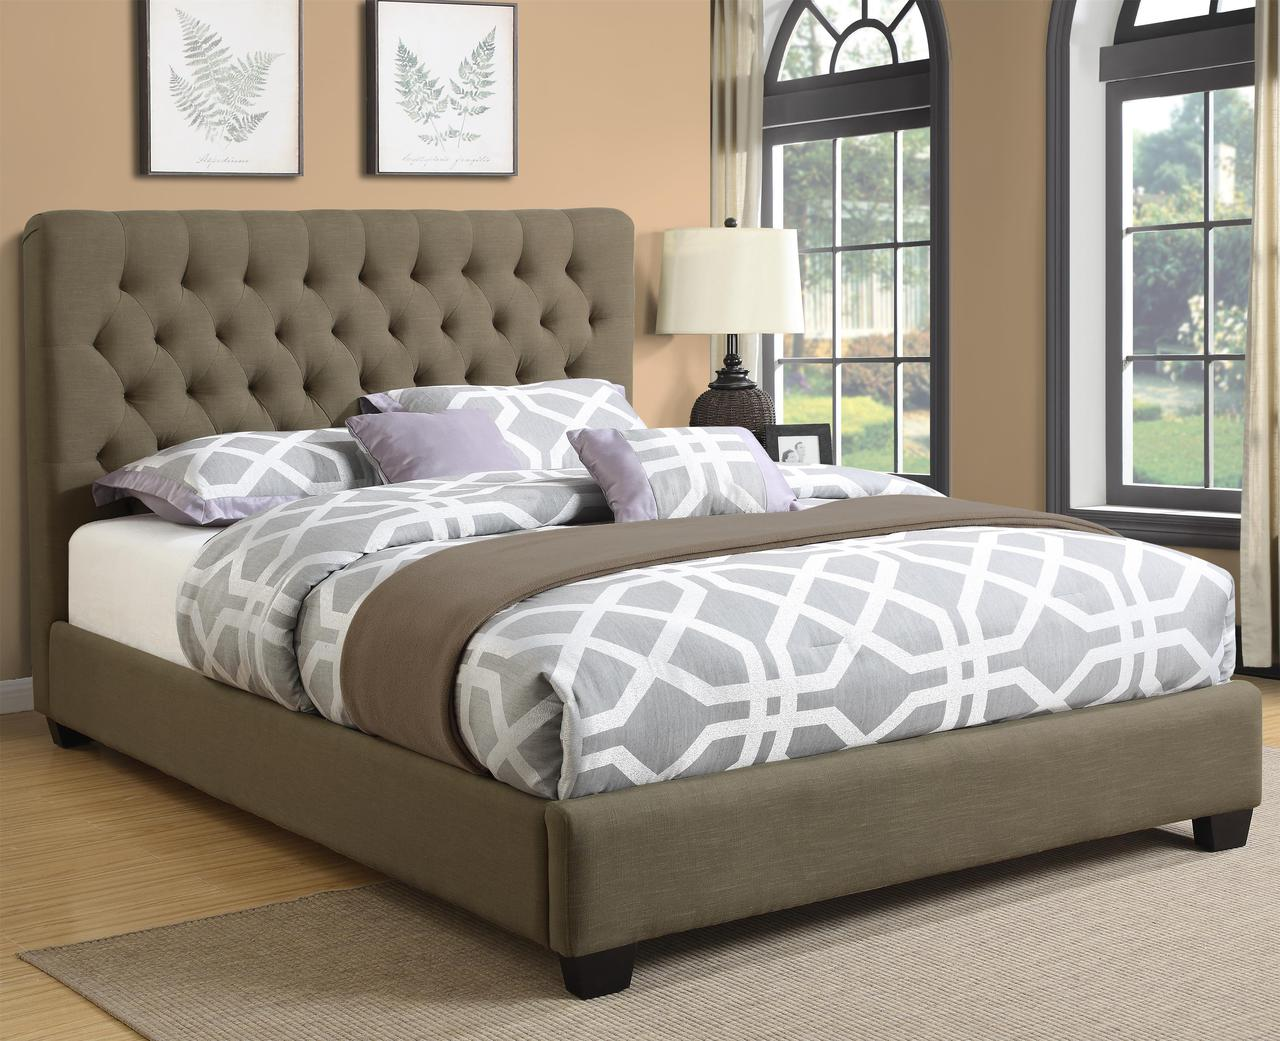 Picture of: Chloe Burlap Bed W Tufted Headboard Miami Direct Furniture